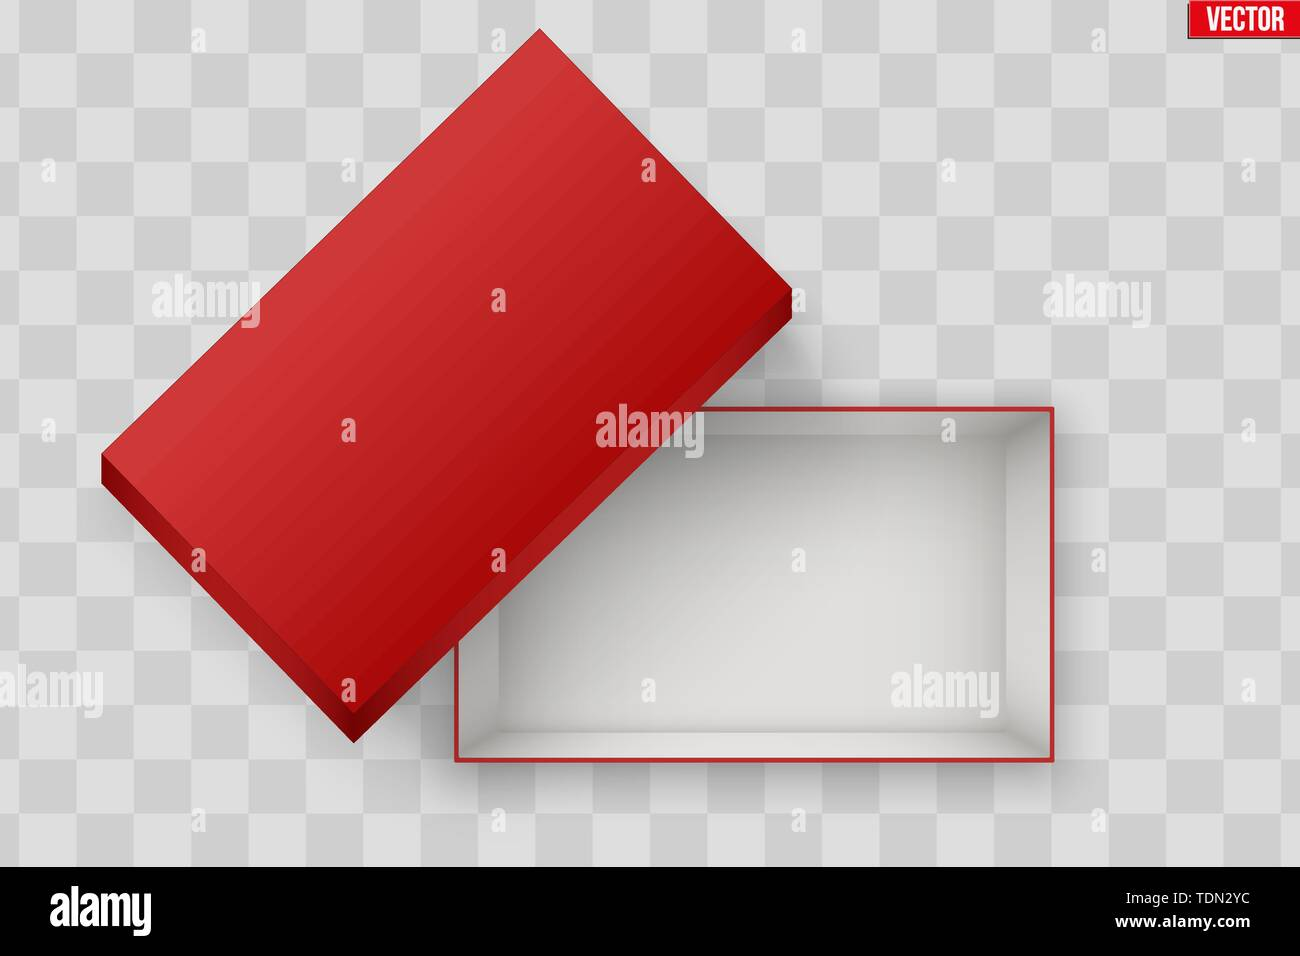 Blank of Opened Red Shoes Box With Lid. Mockup Rectangle Paper box container. Vector Illustration isolated on transparent background. - Stock Image